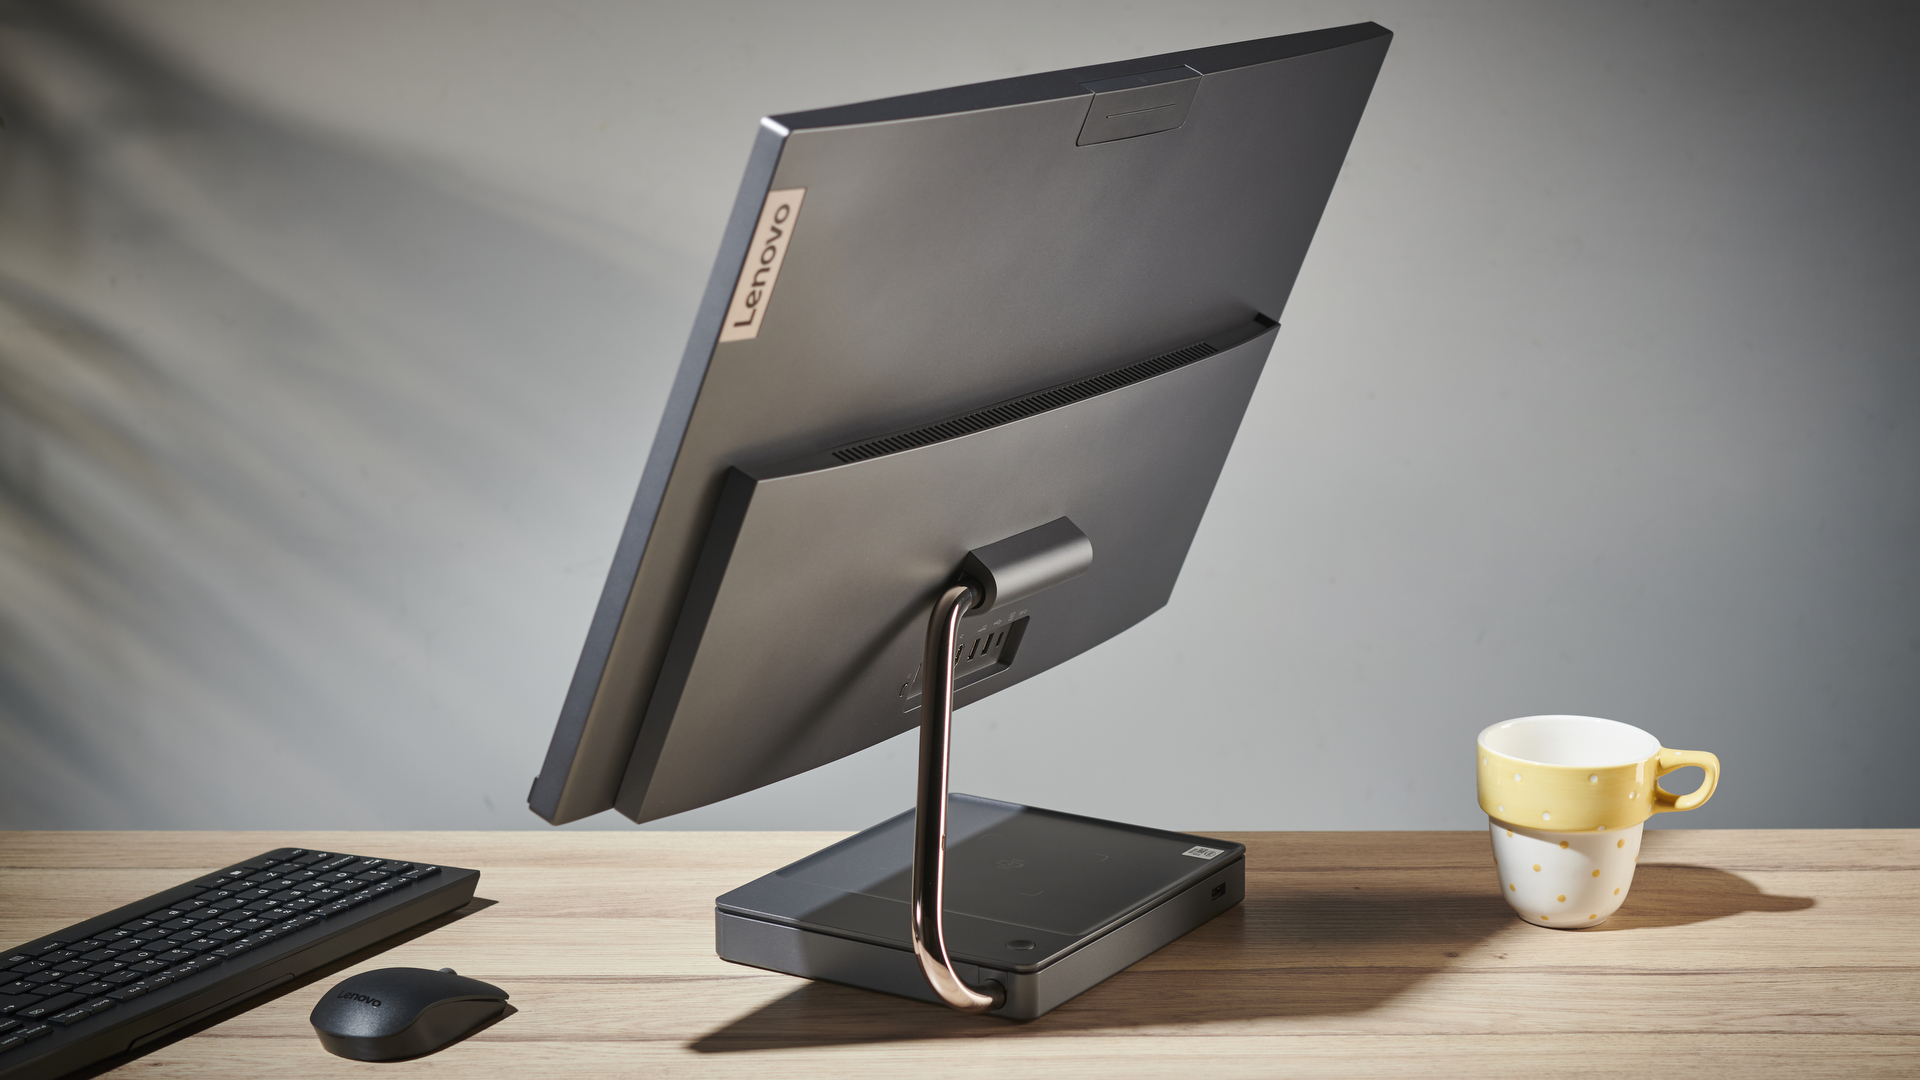 Lenovo IdeaCentre AIO 5 all-in-one PC on a desk in an office